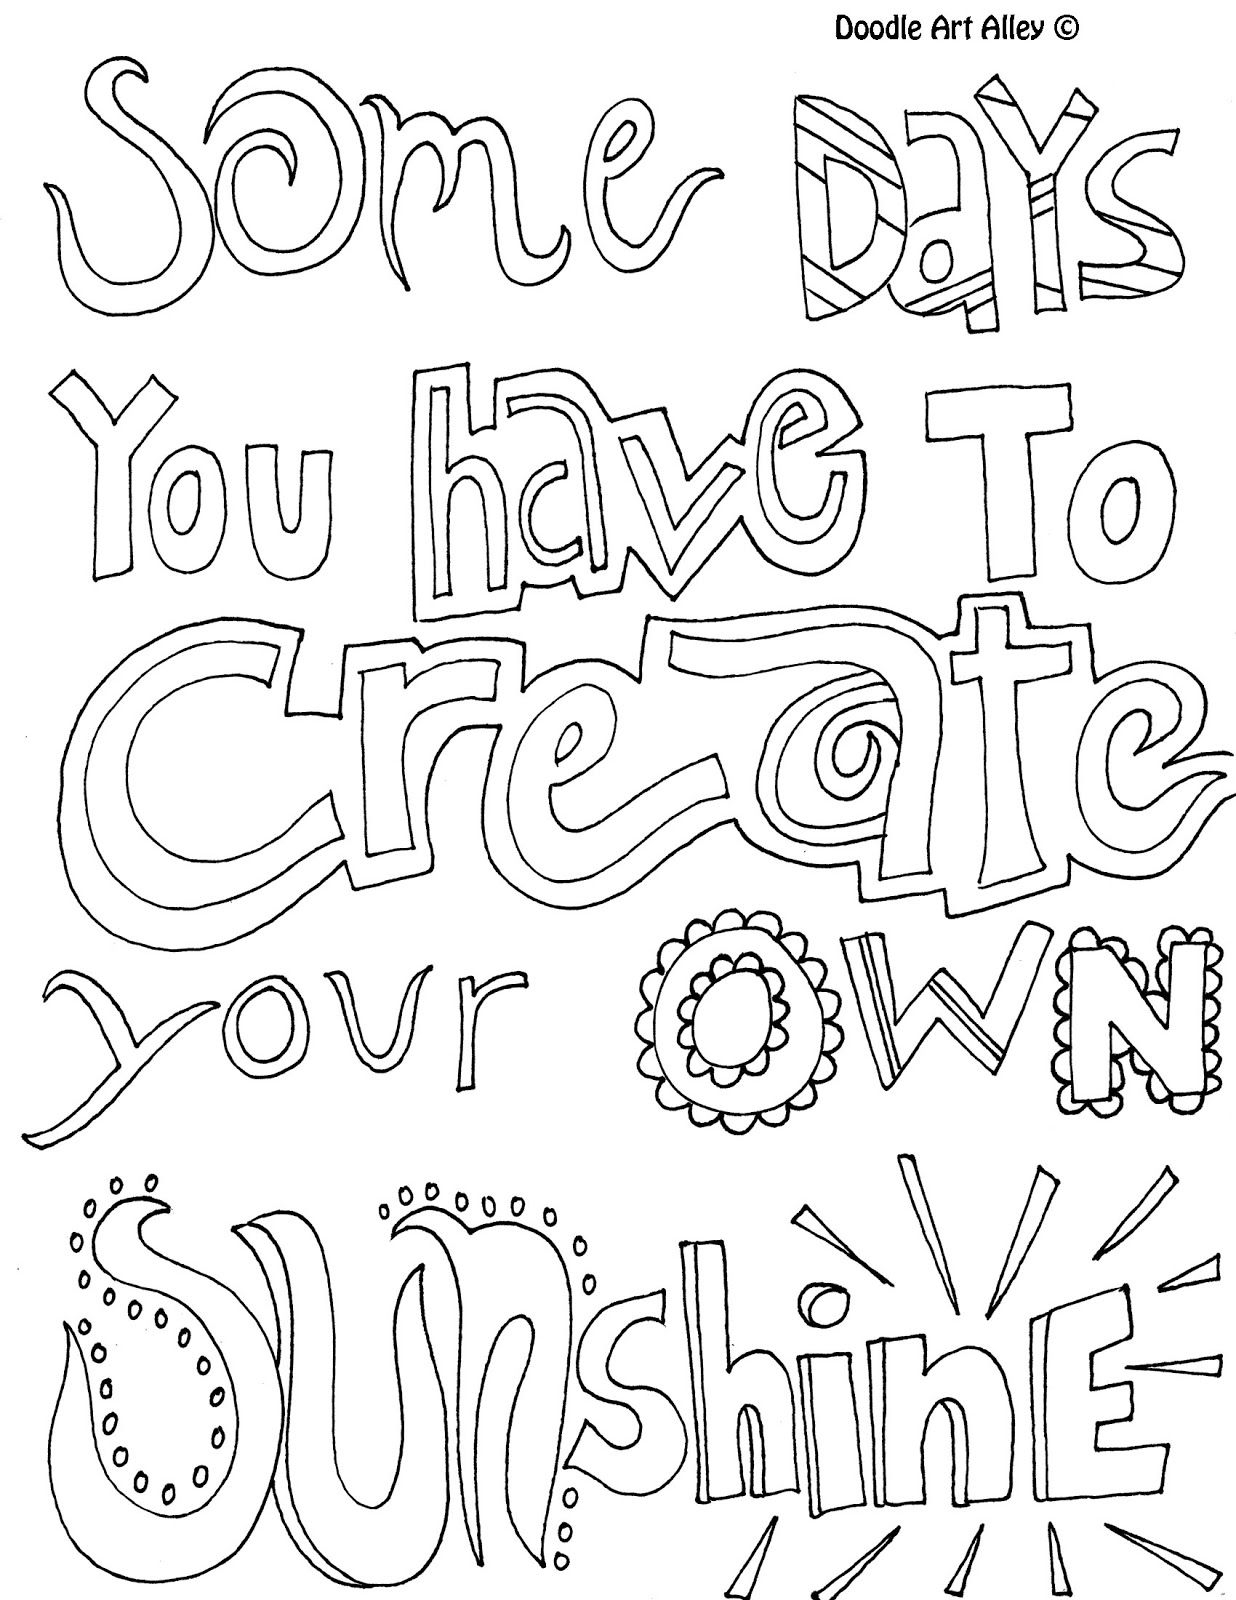 All Quotes Coloring Pages Great Quotes Doodle Page Great to Use Printable Of Quote Coloring Pages Coloringsuite Download